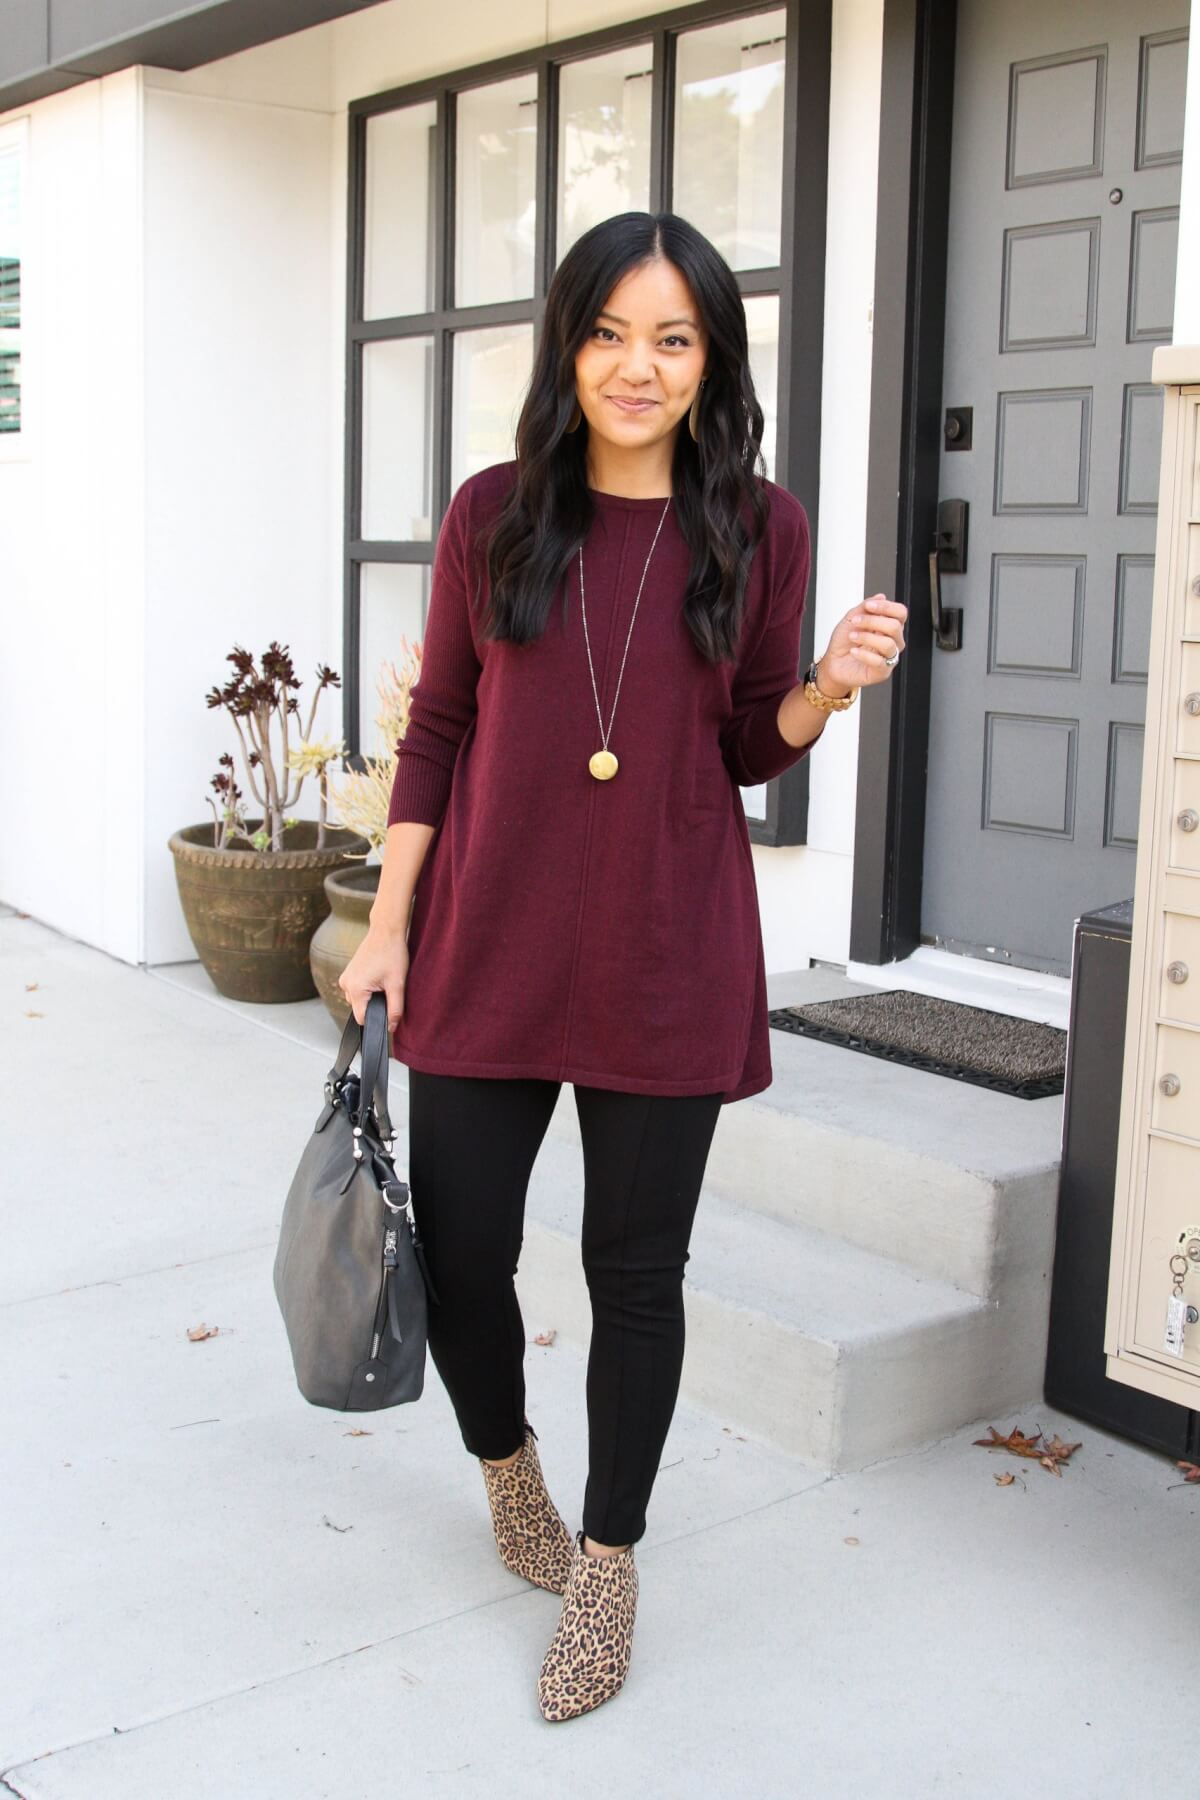 Classic Outfit: maroon tunic sweater + black leggings + leopard booties + pendant necklace + gray bag